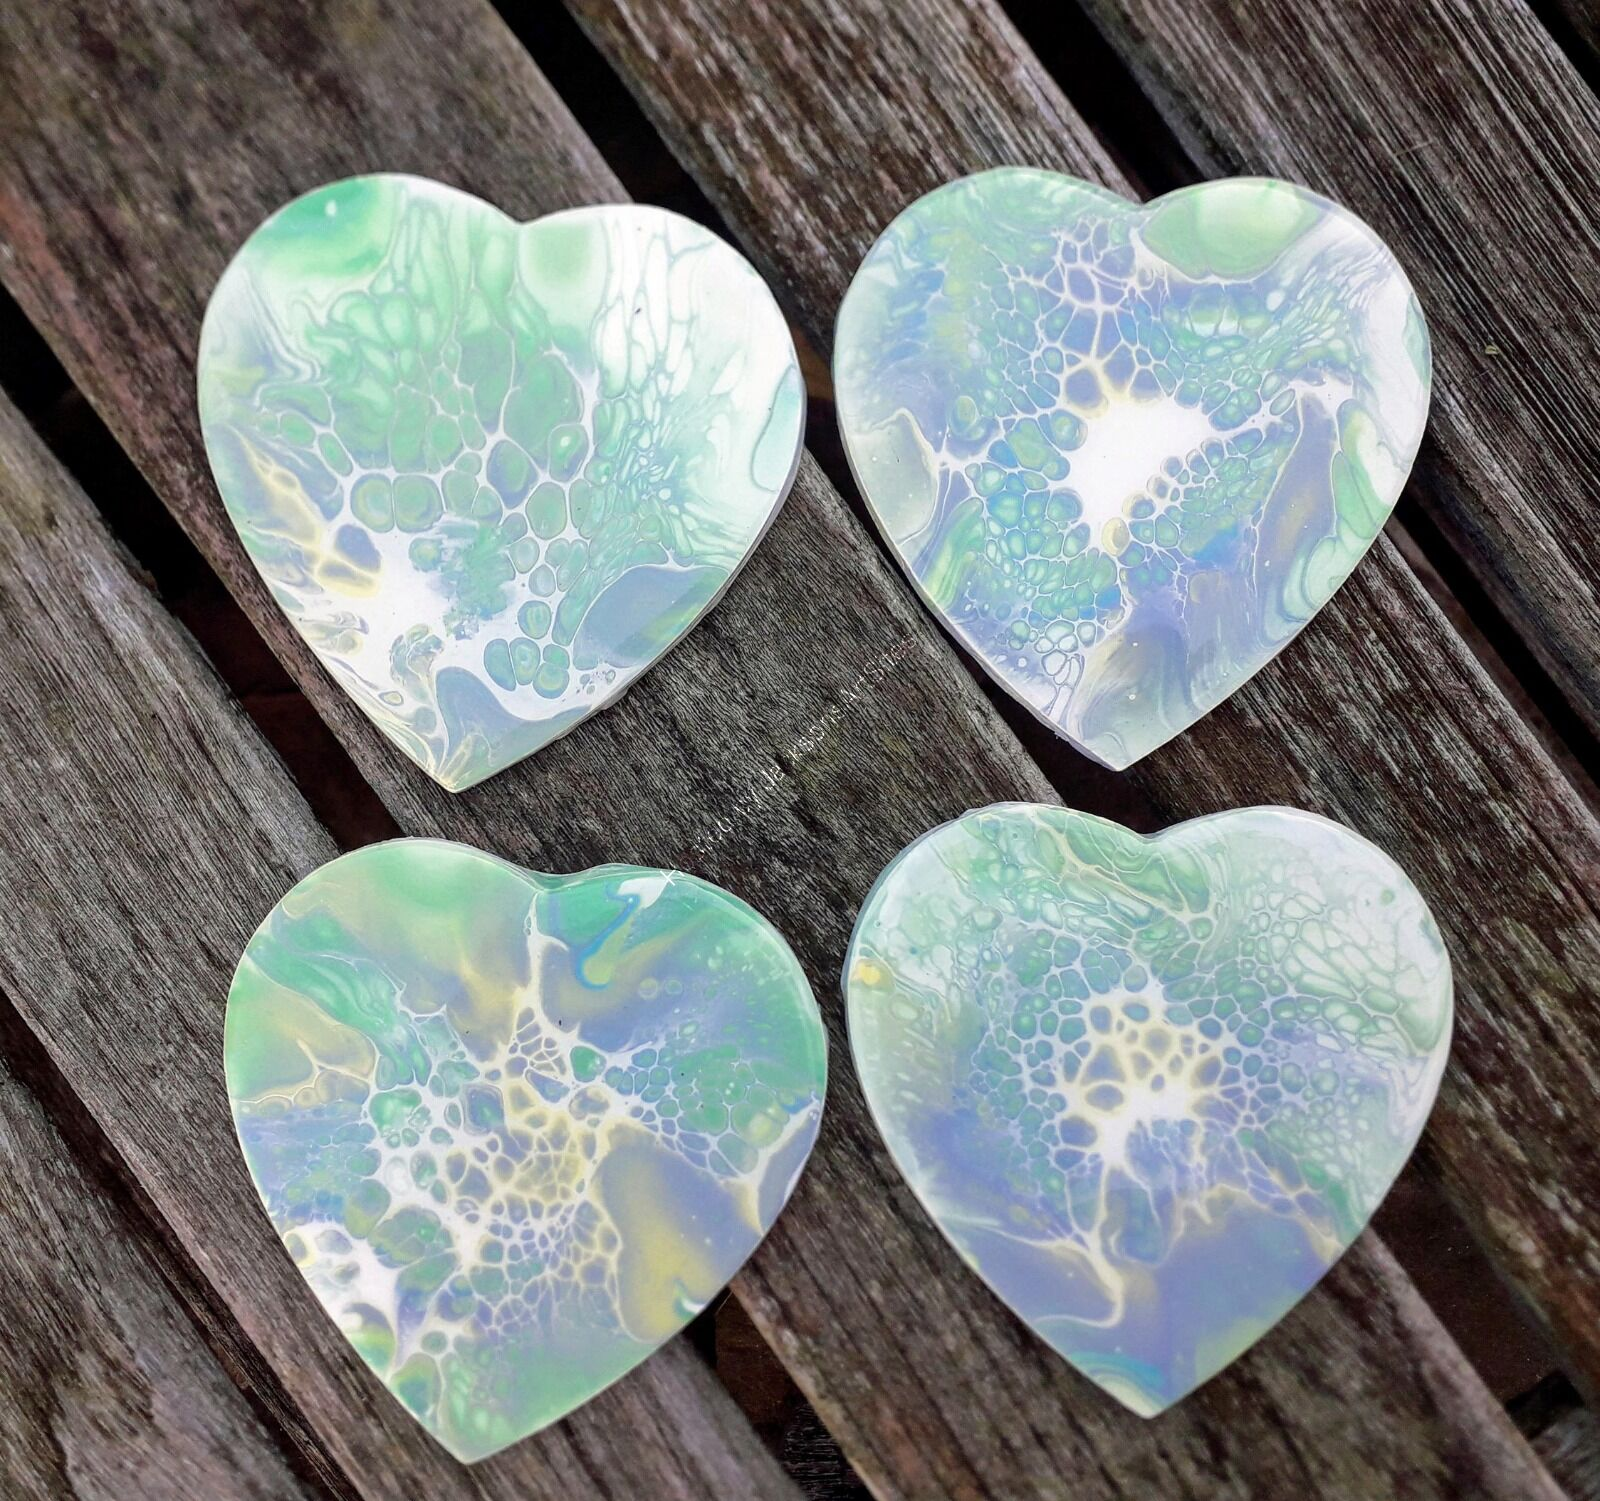 Four Pale Green Wooden Heart Coasters